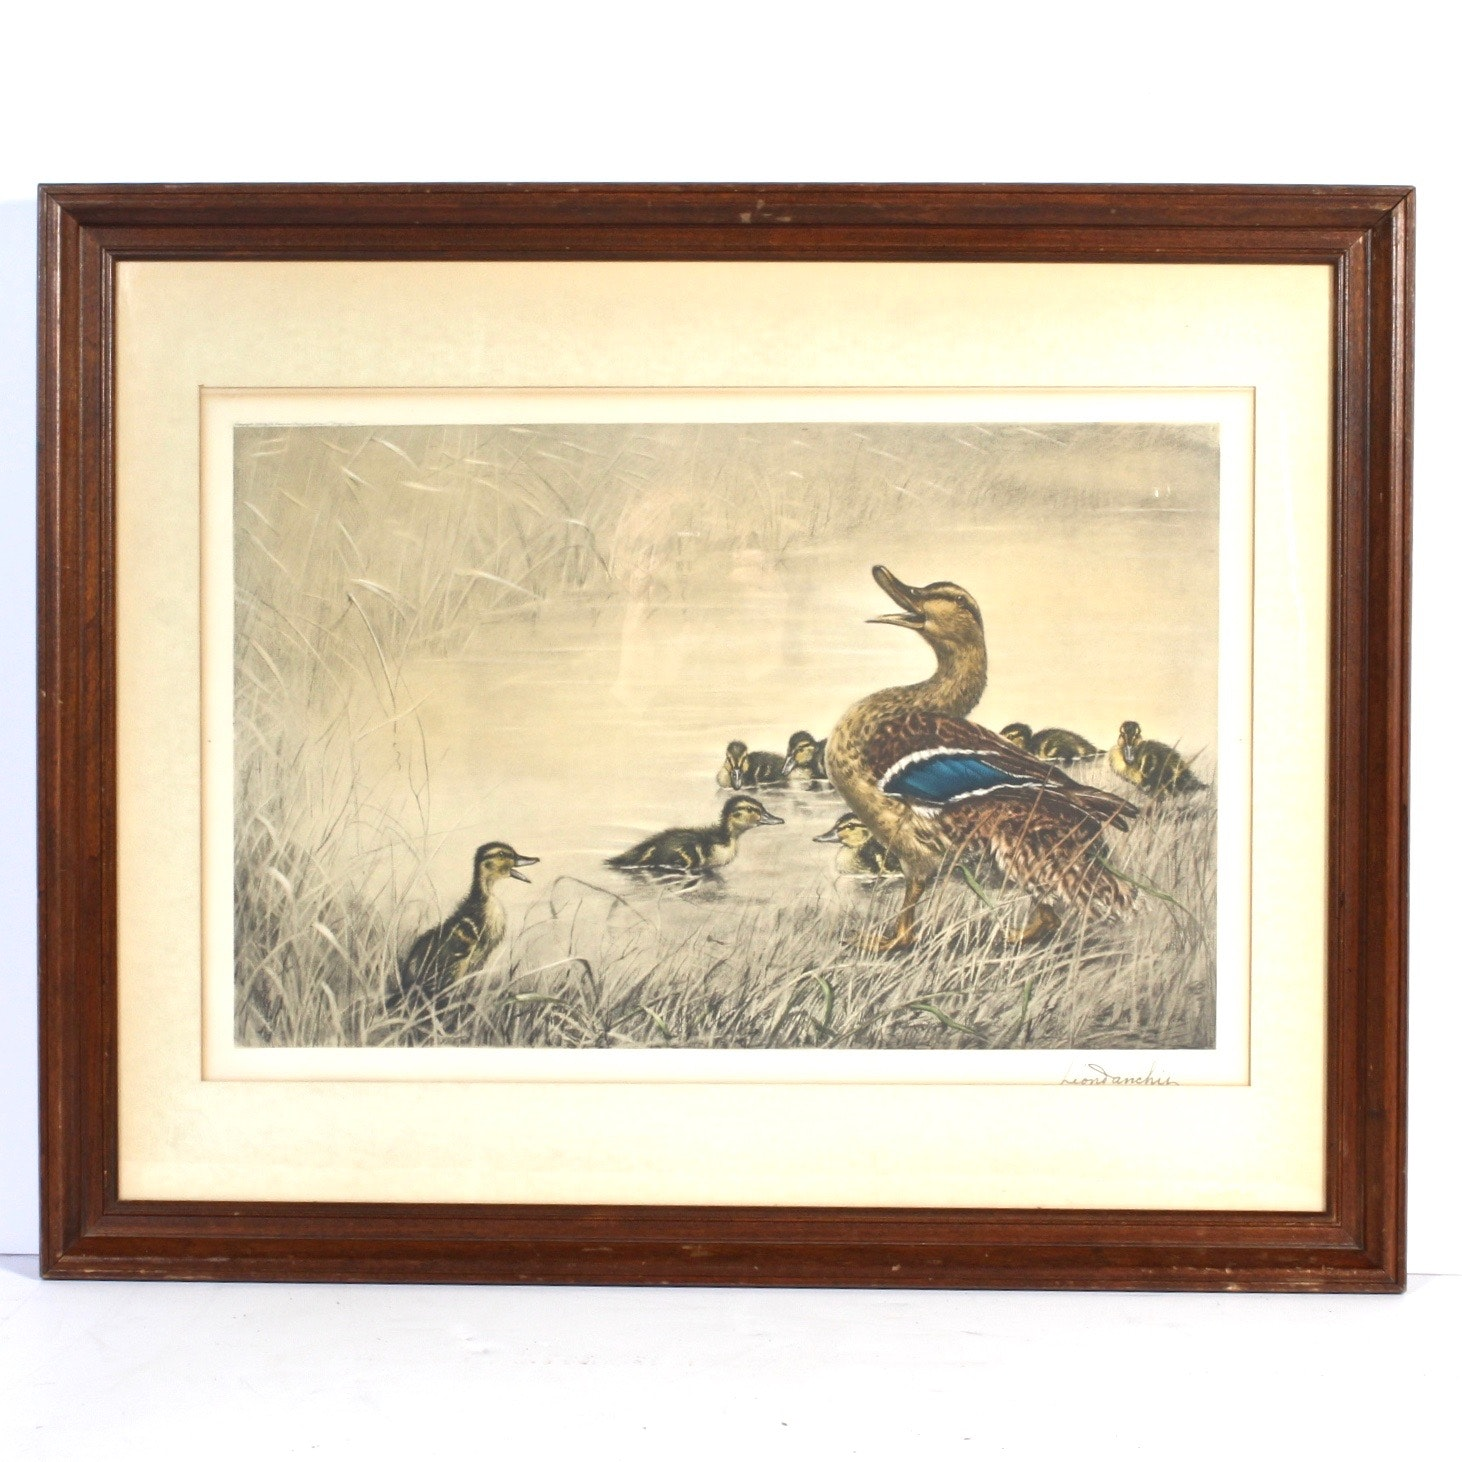 Leon Danchin Chromolithograph of Duck and Ducklings